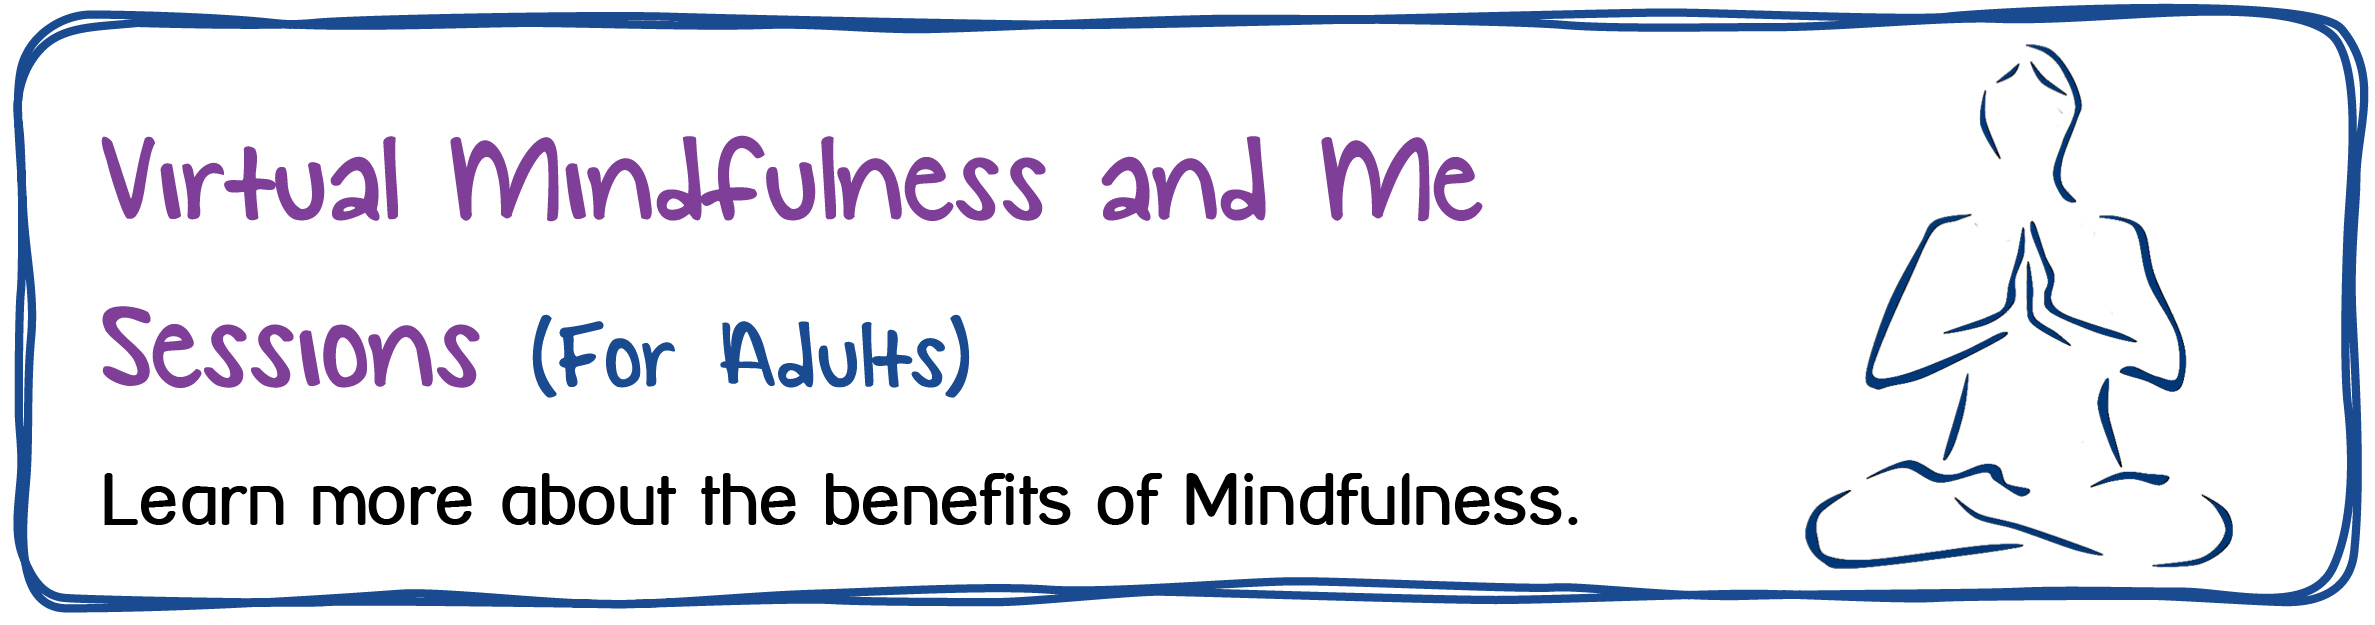 Virtual Mindfulness and Me Sessions (For Adults) Learn more about the benefits of Mindfulness.